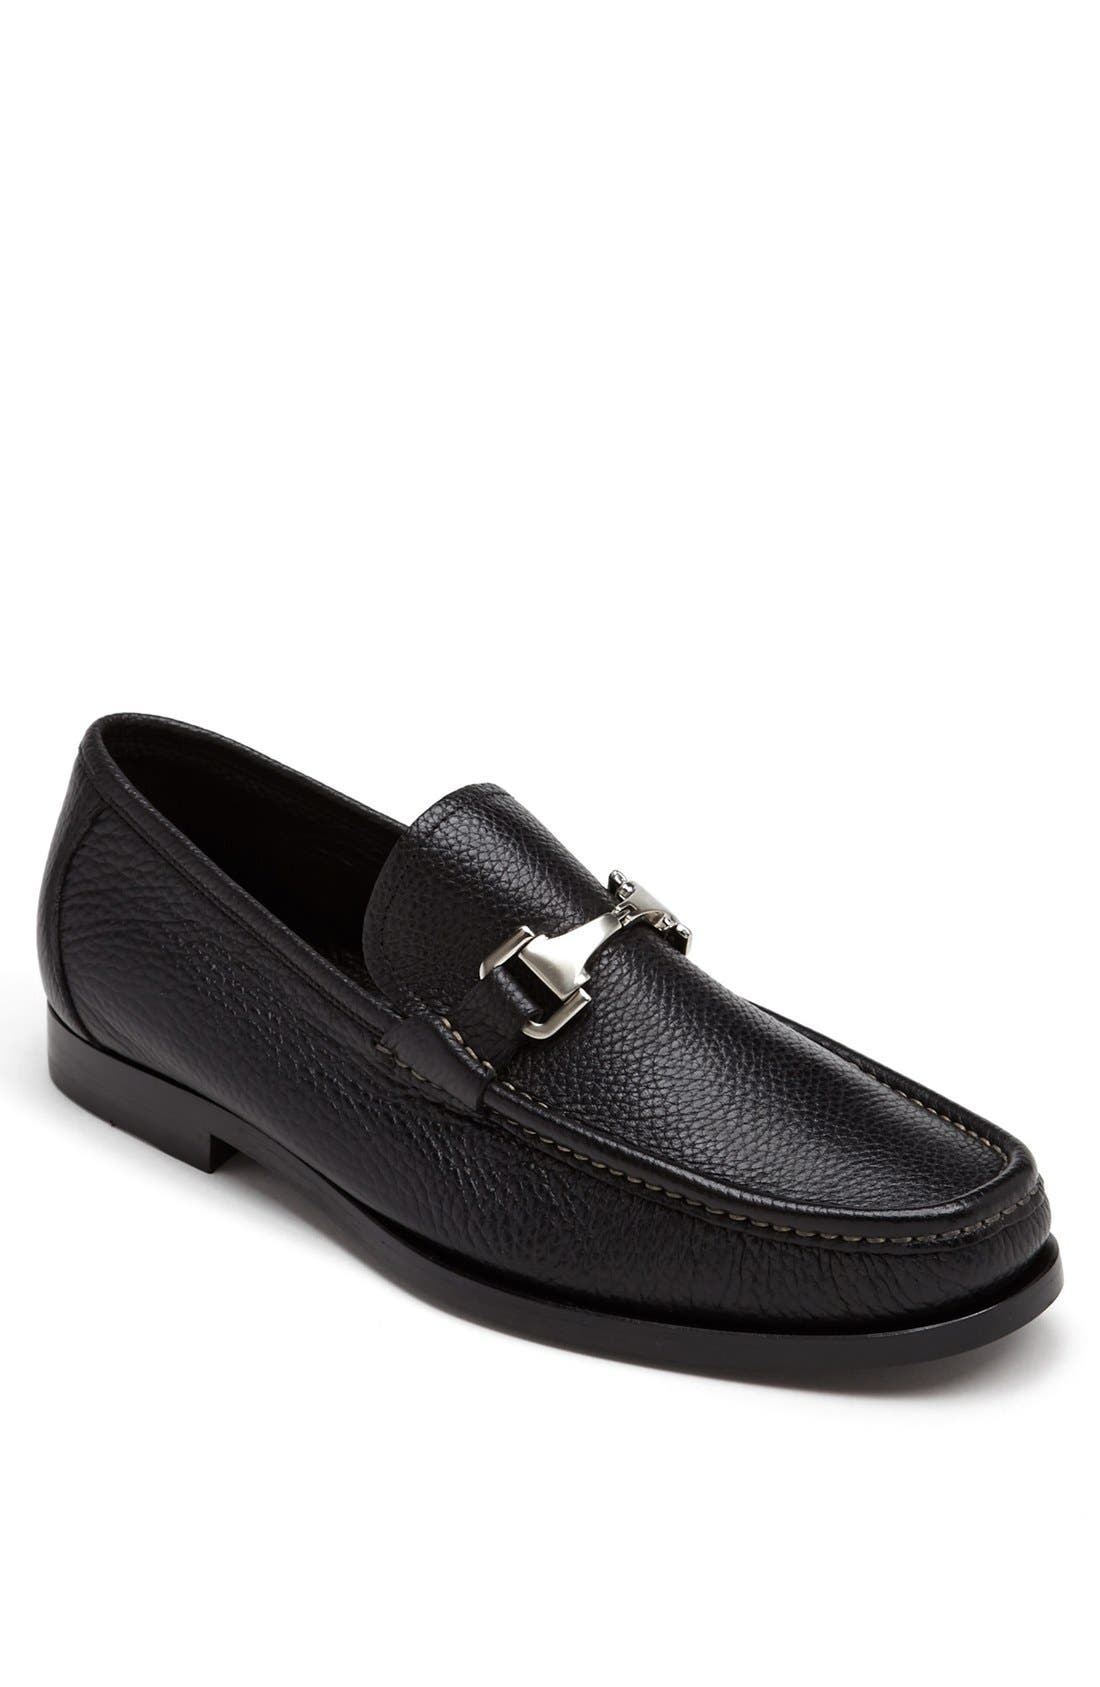 Alternate Image 1 Selected - Allen Edmonds 'Firenze' Bit Loafer (Men)